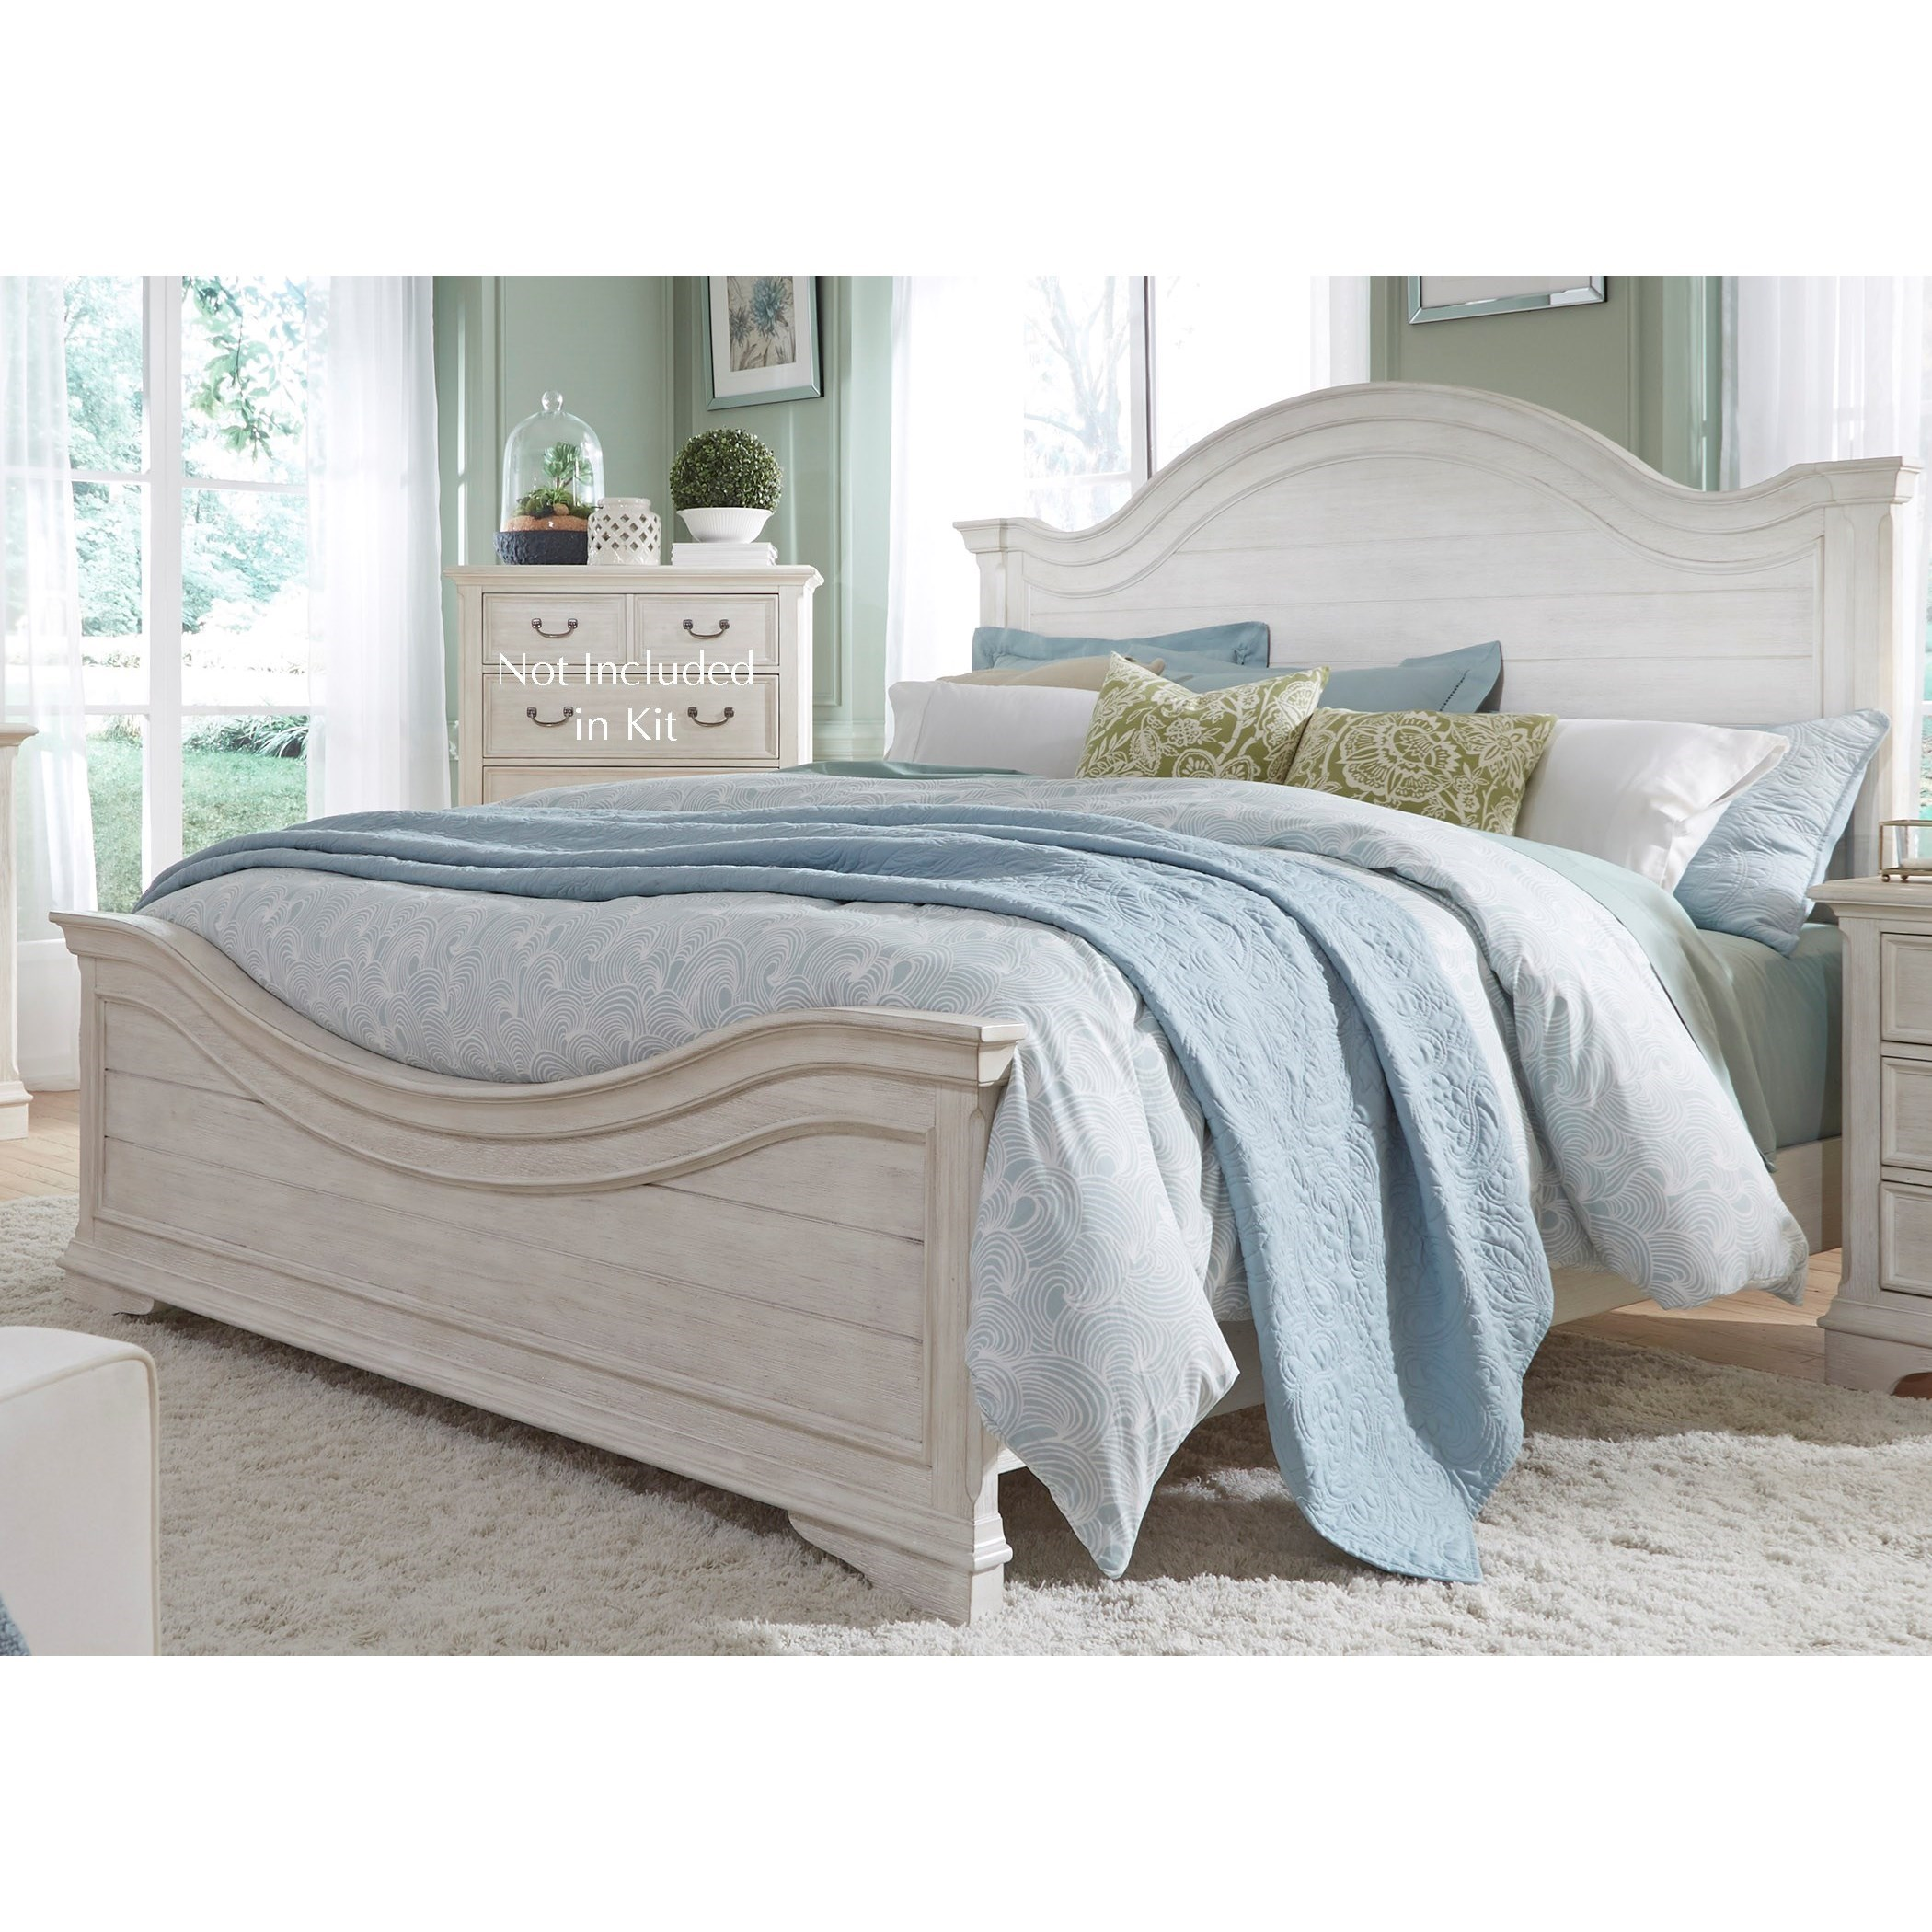 Bayside Bedroom Queen Panel Bed  by Liberty Furniture at Johnny Janosik